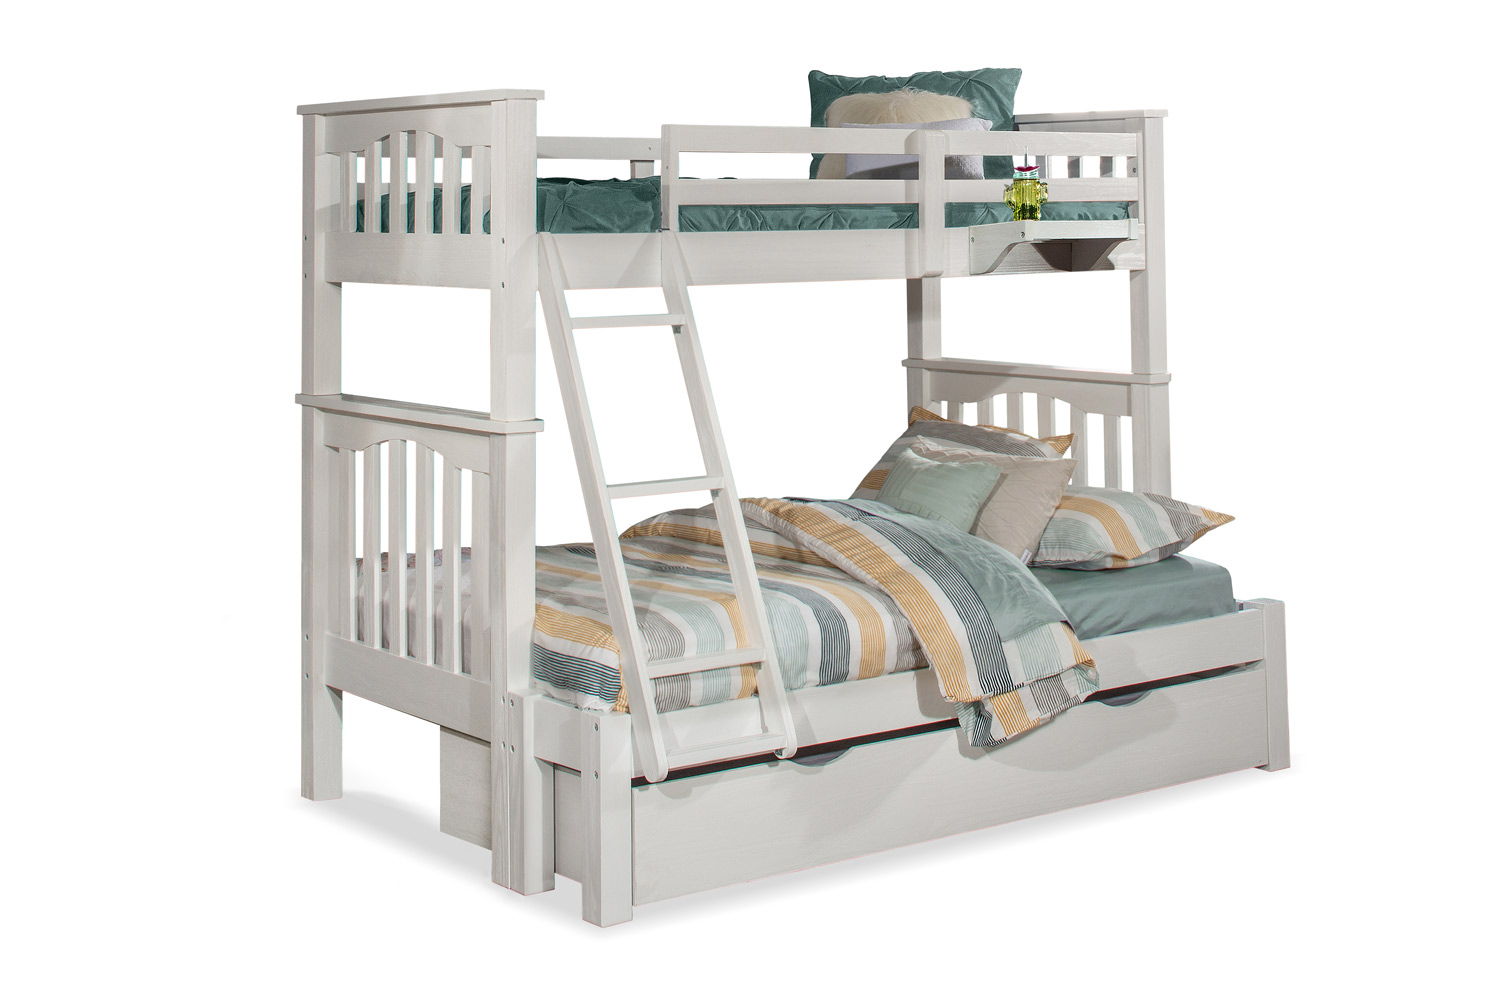 NE Kids Highlands Harper Twin/Full Bunk Bed with Trundle and Hanging Nightstand - White Finish